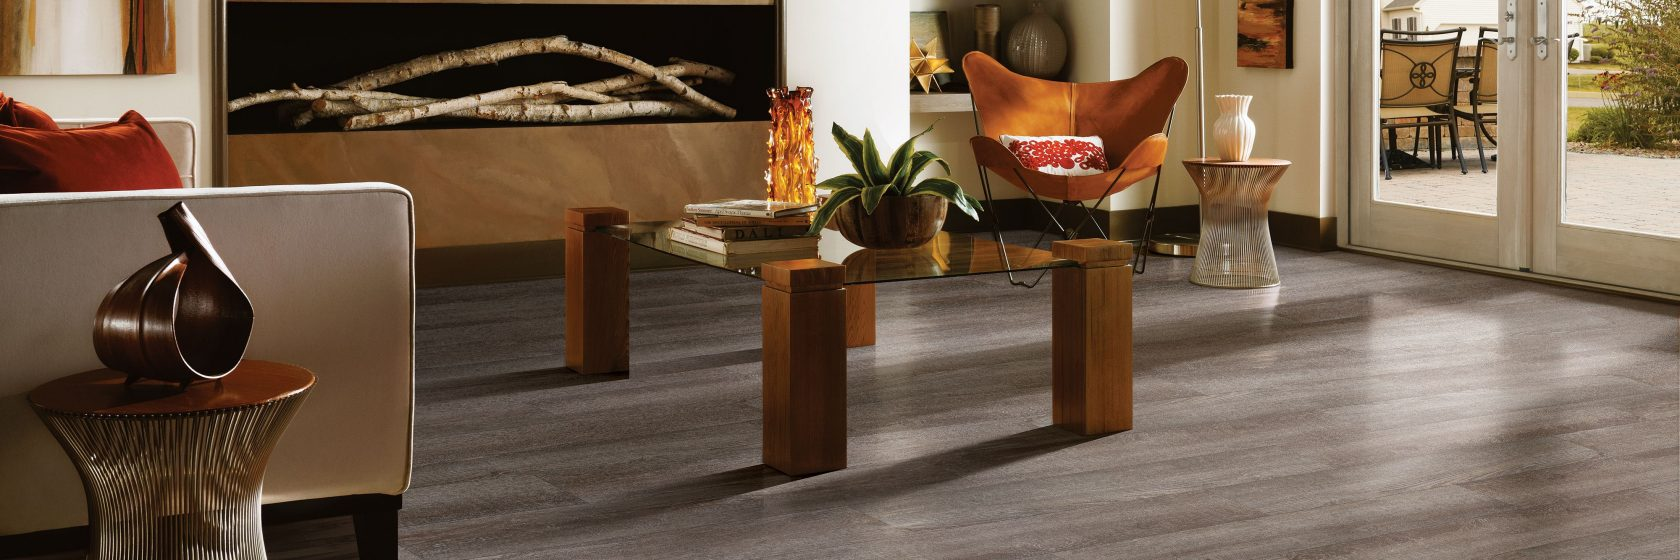 Rigid Core Elements Armstrong Flooring Residential